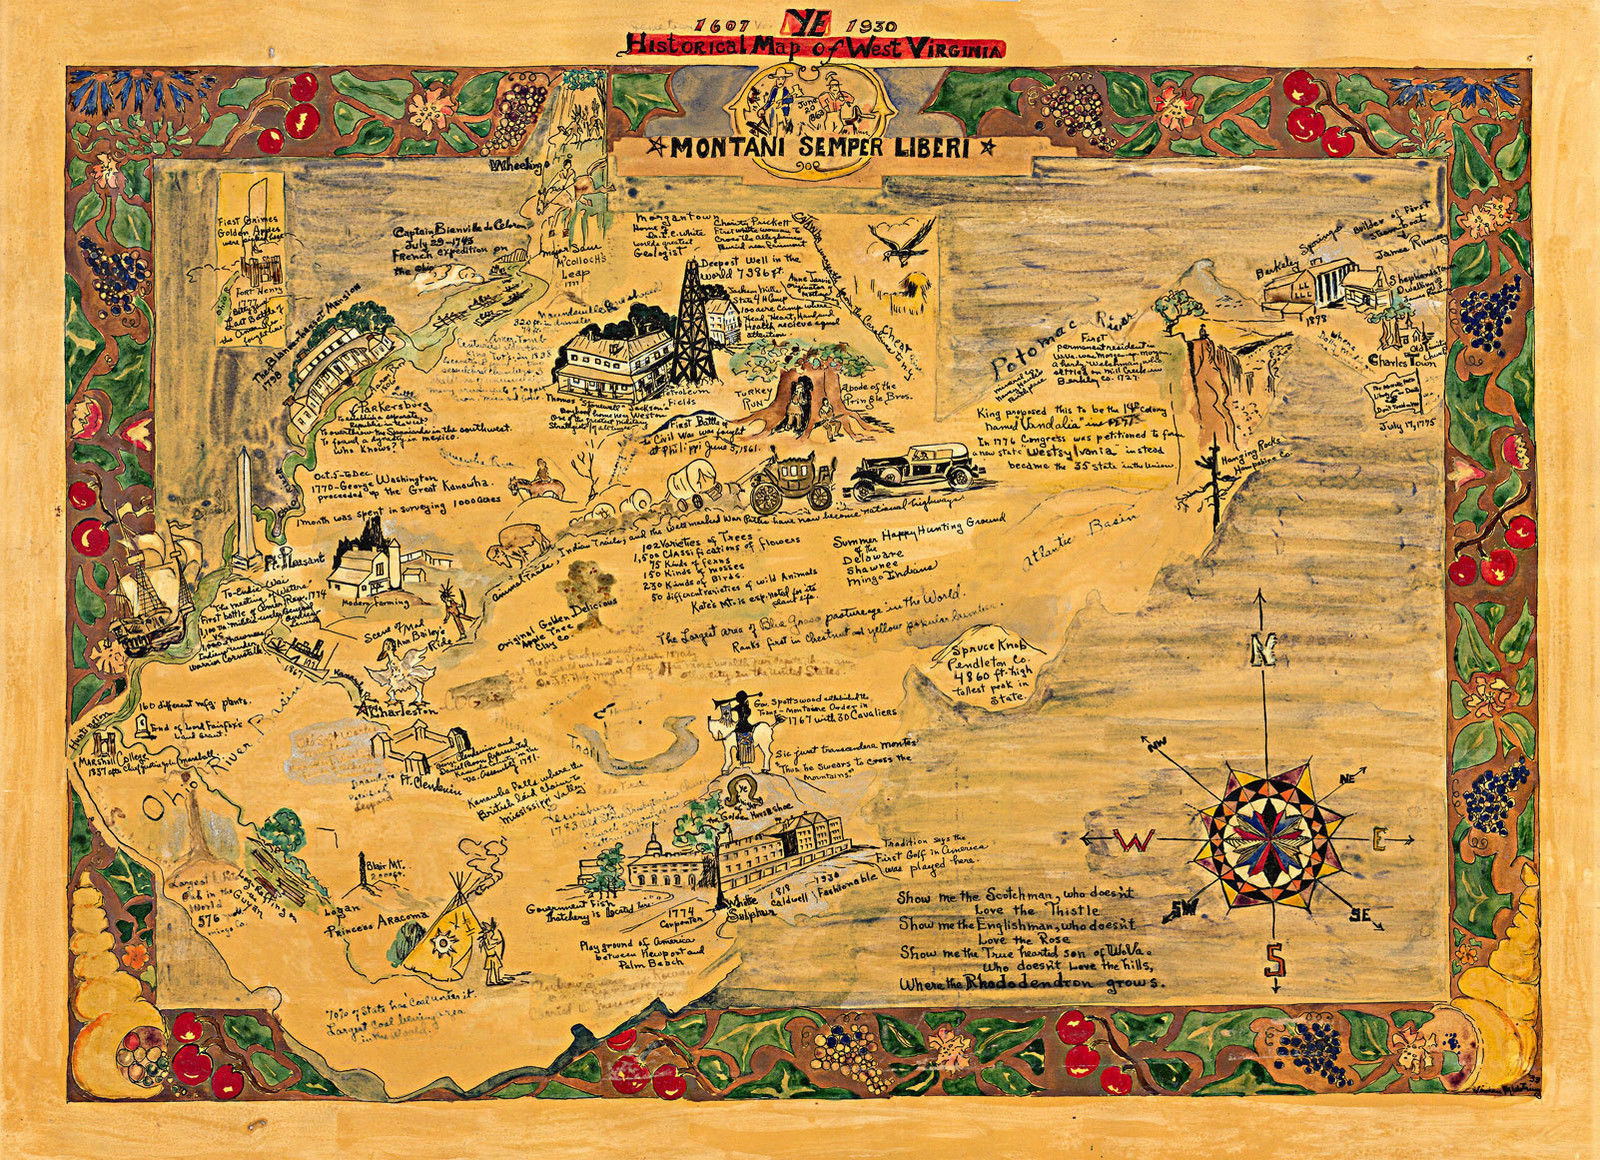 Pictorial Historical Map of West Virginia 1607-1930 Midcentury Wall ...